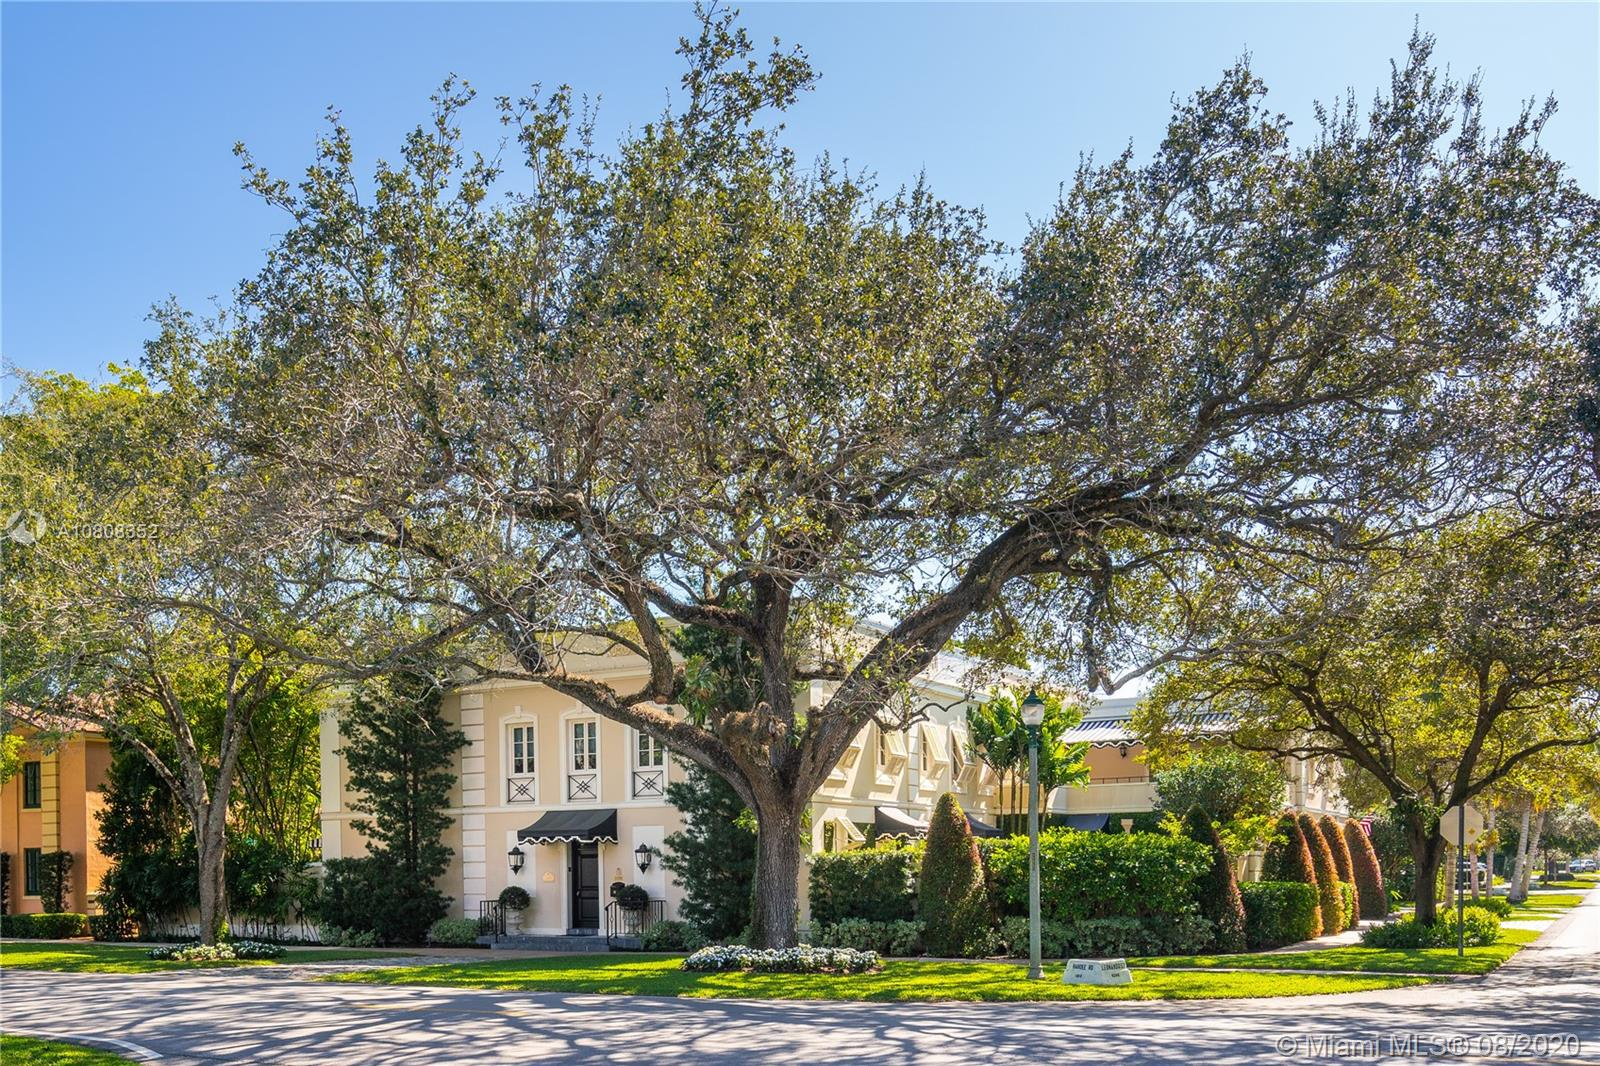 1030 Hardee Rd, Coral Gables, FL 33146